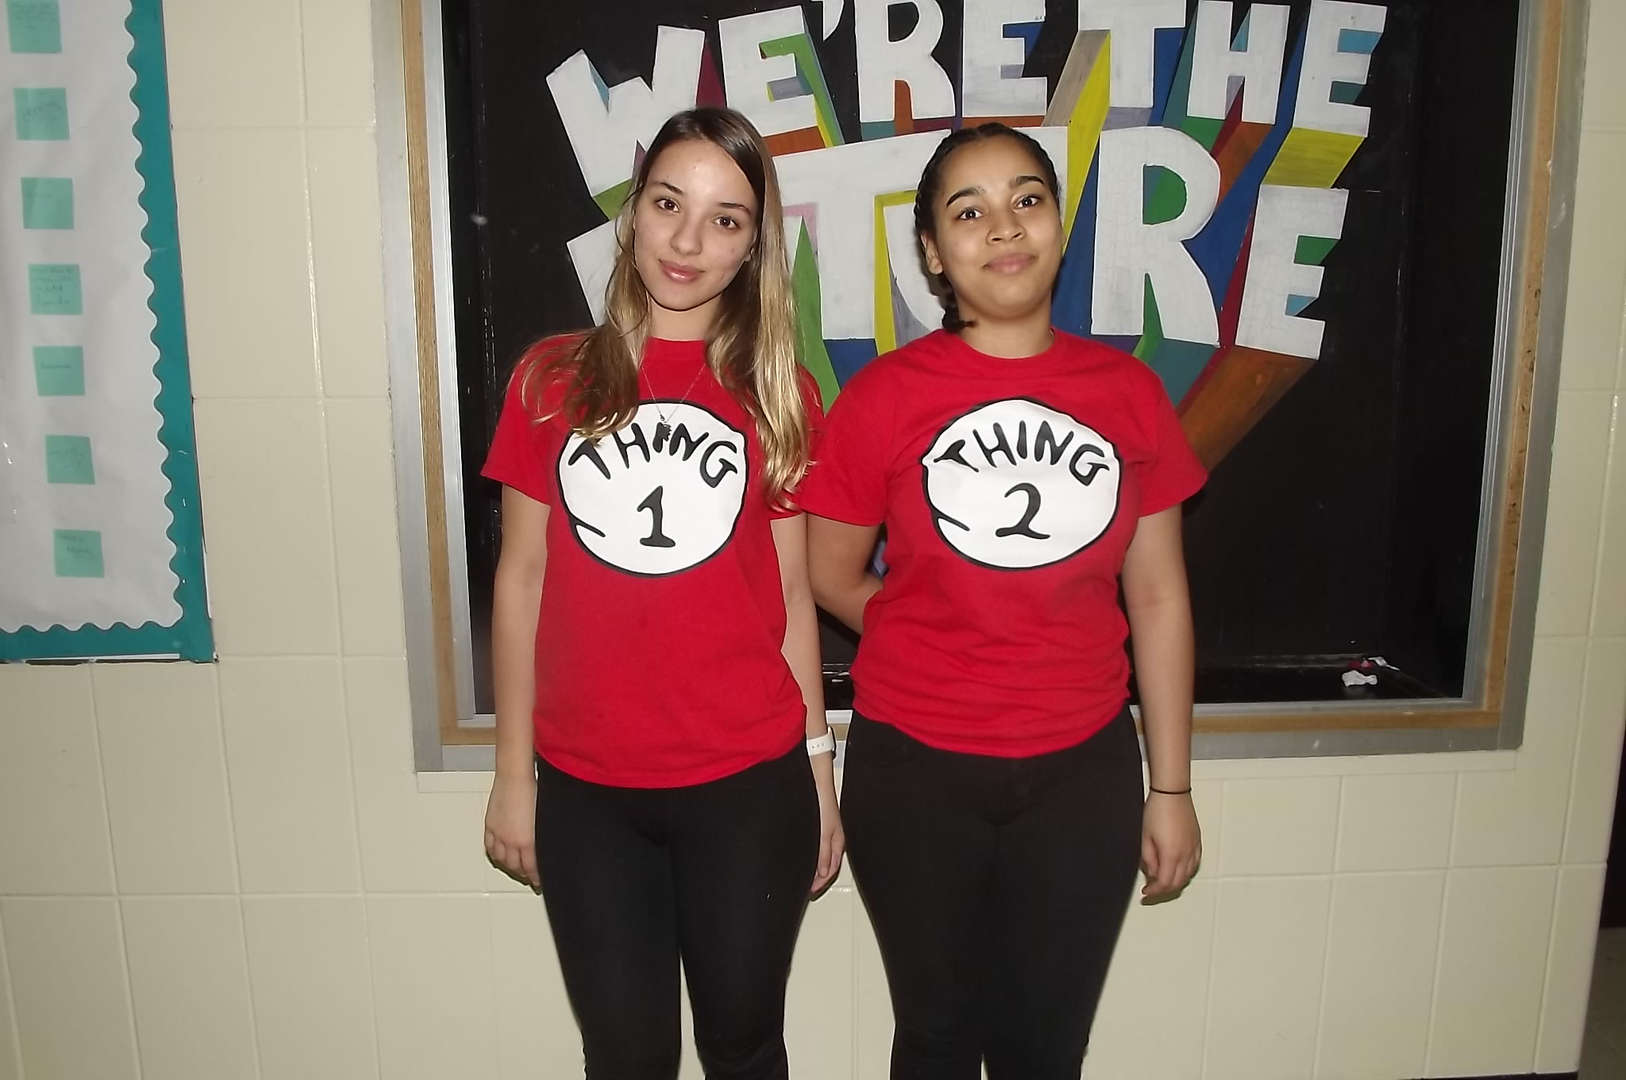 thing 1 thing 2 tshirts for twin day 2017-2018 Spirit Week #2